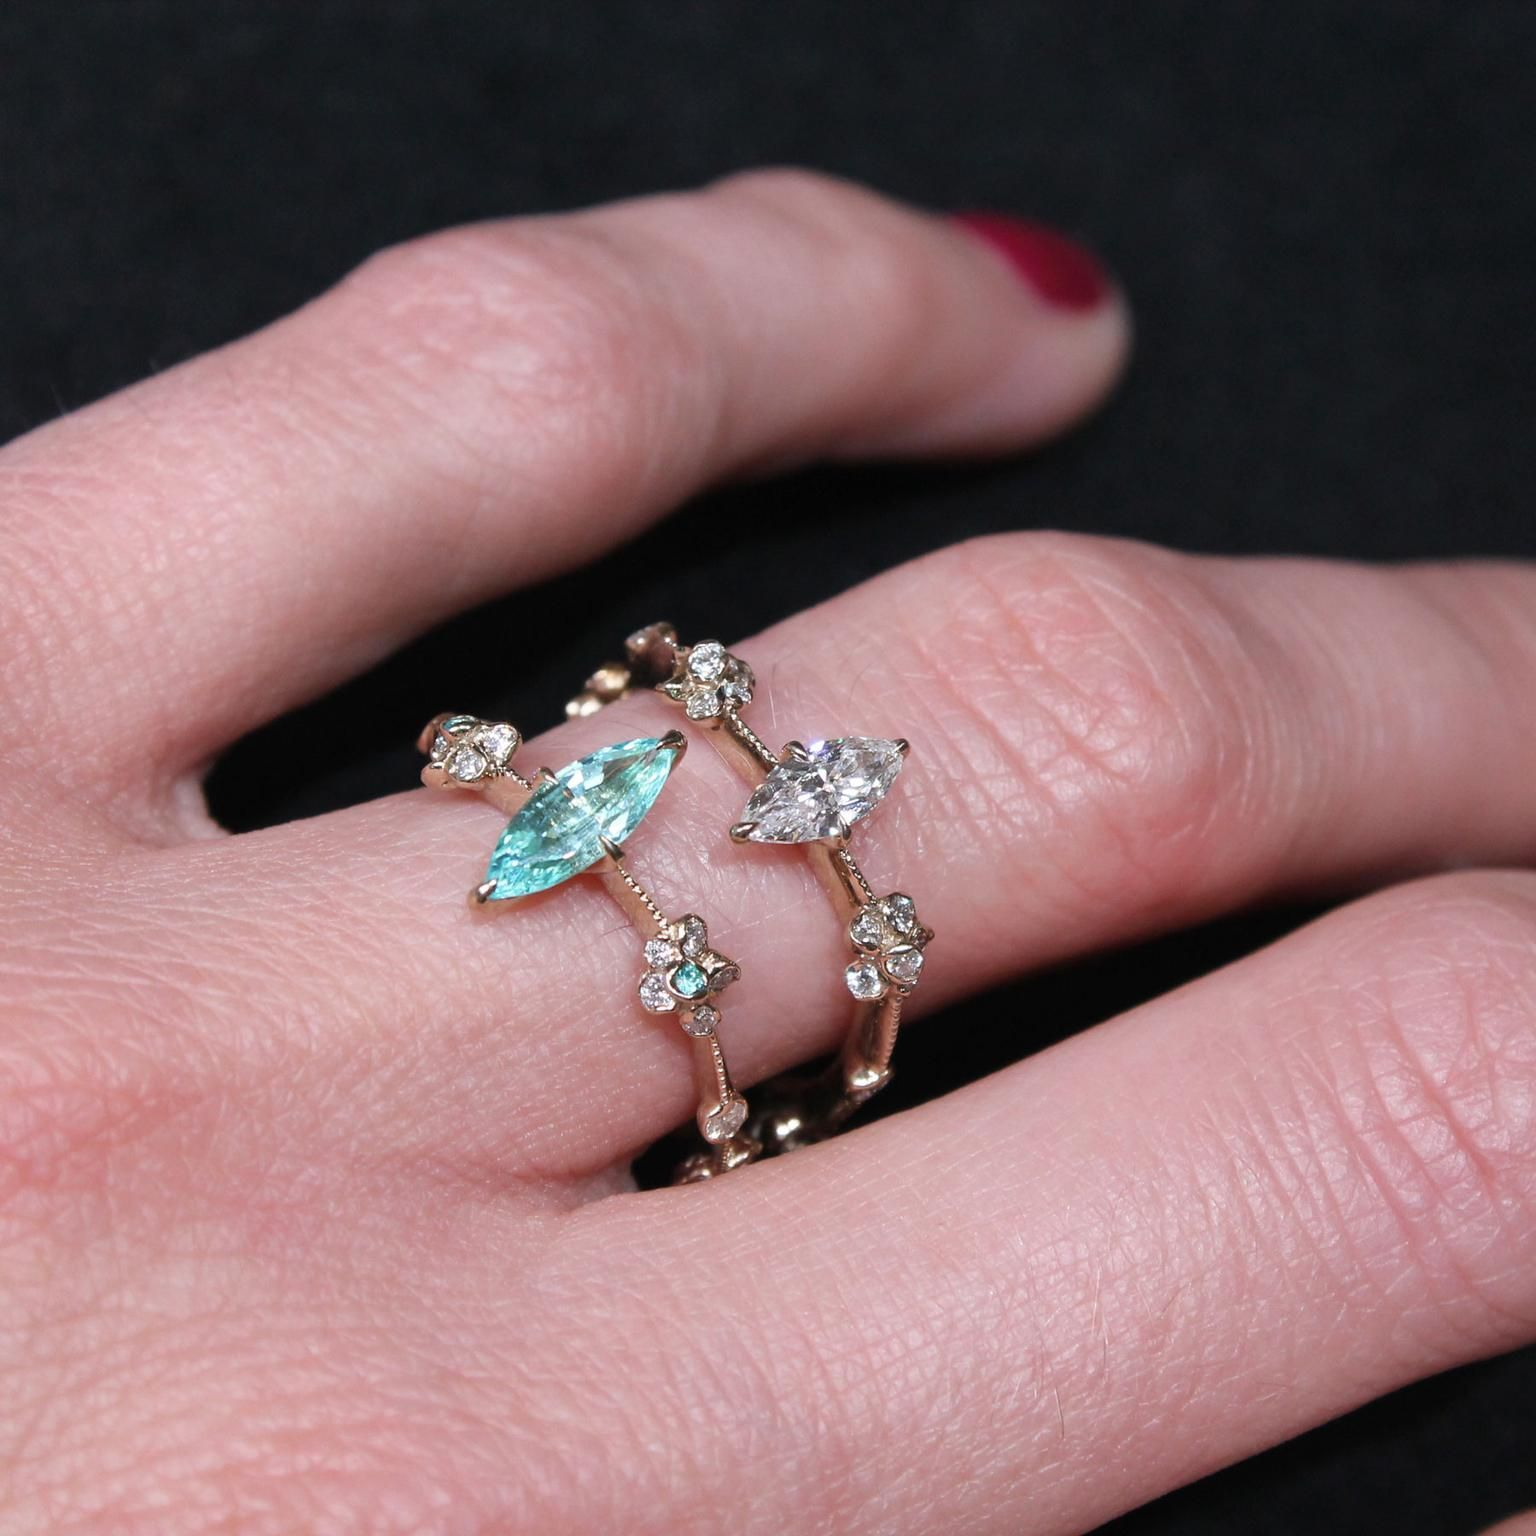 Kataoka marquise cut diamond solitaire engagement ring | Solitaires ...